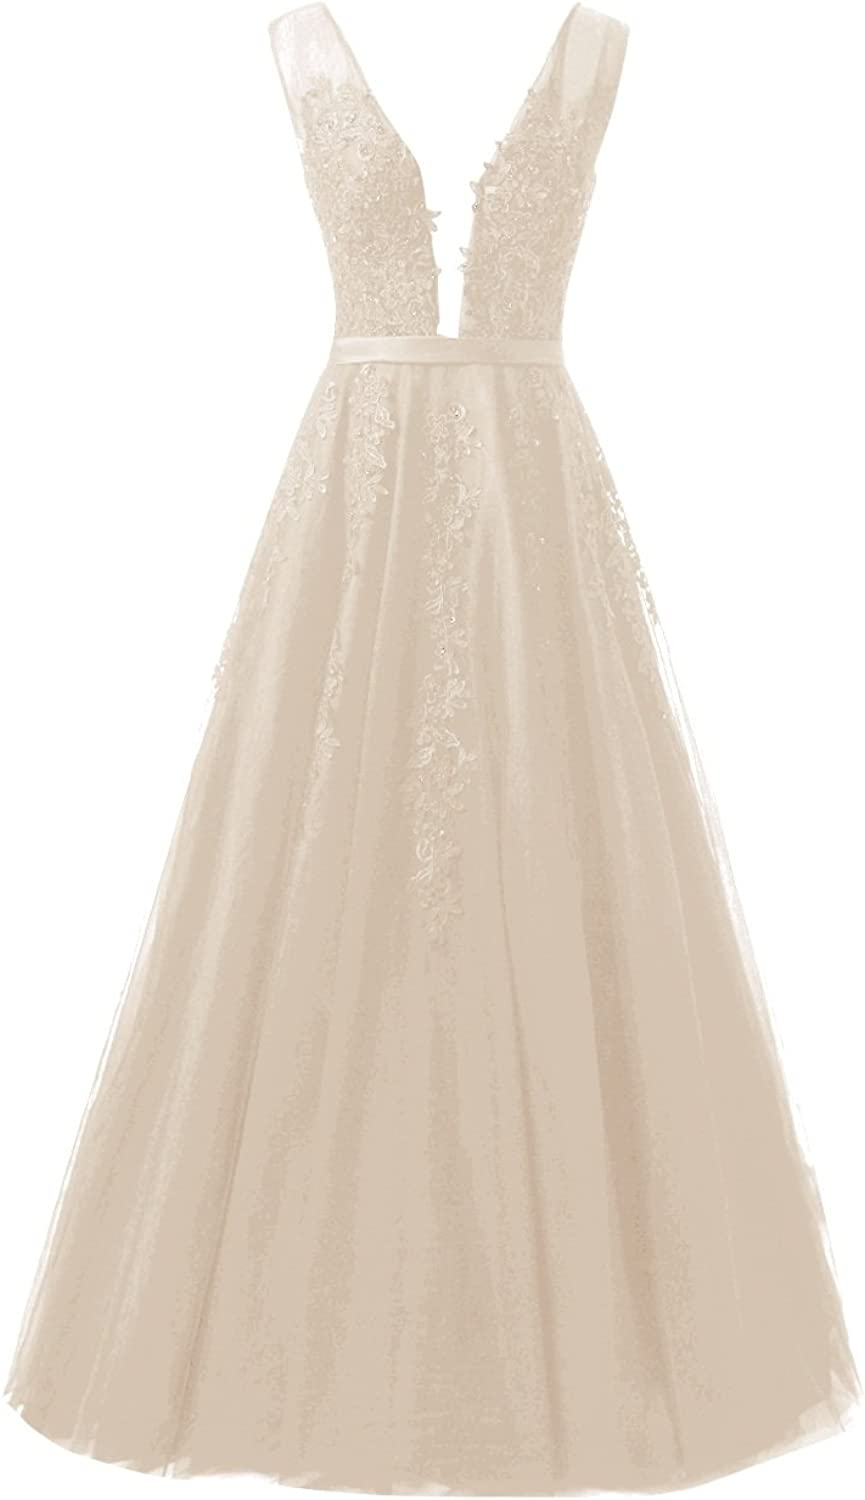 Bess Bridal Women's Deep V Neck Lace Beaded Long Tulle Prom Evening Dresses